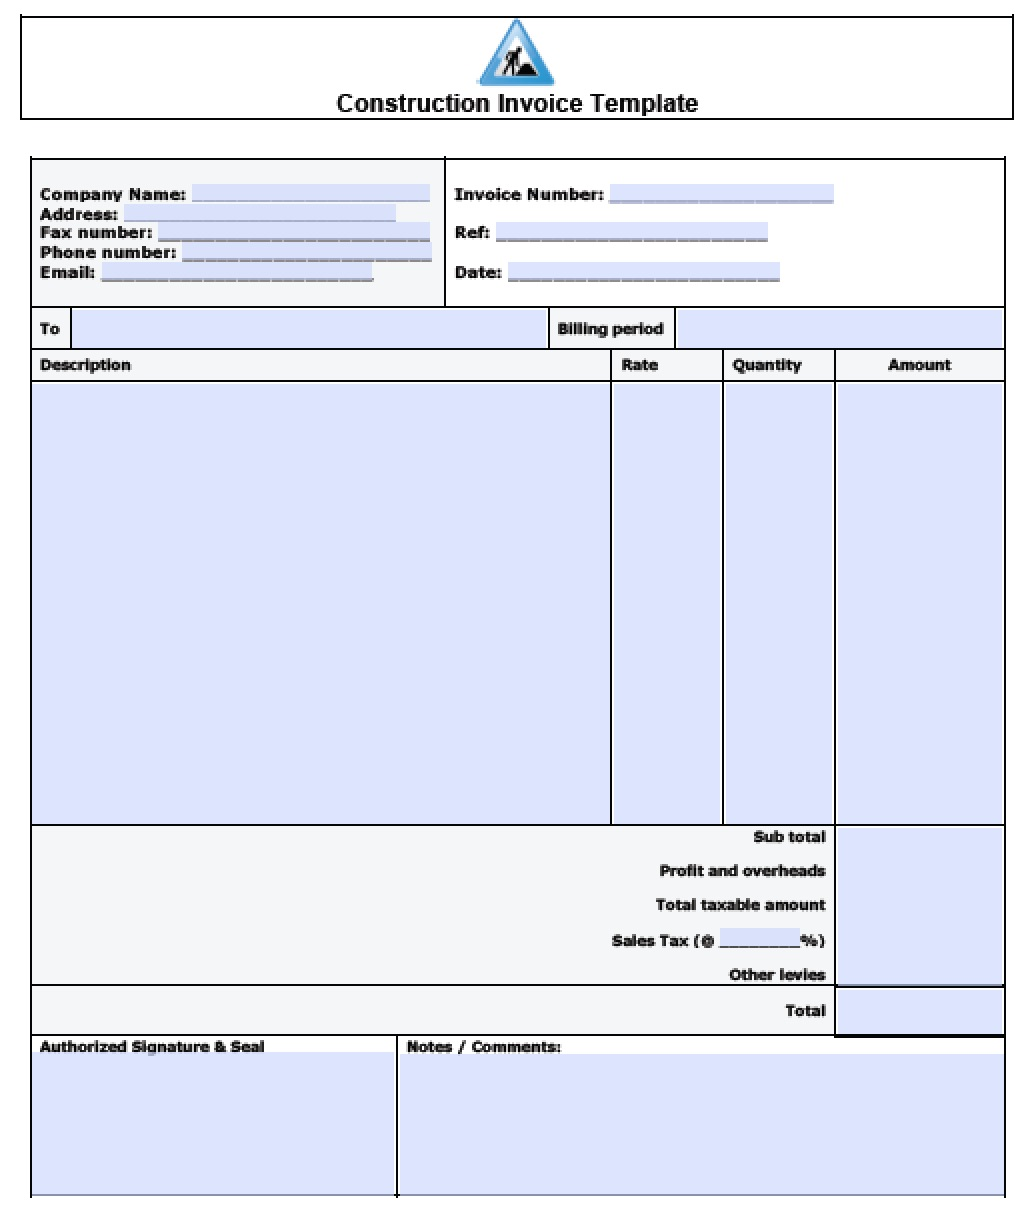 Free construction invoice template excel pdf word doc for Adobe construction cost